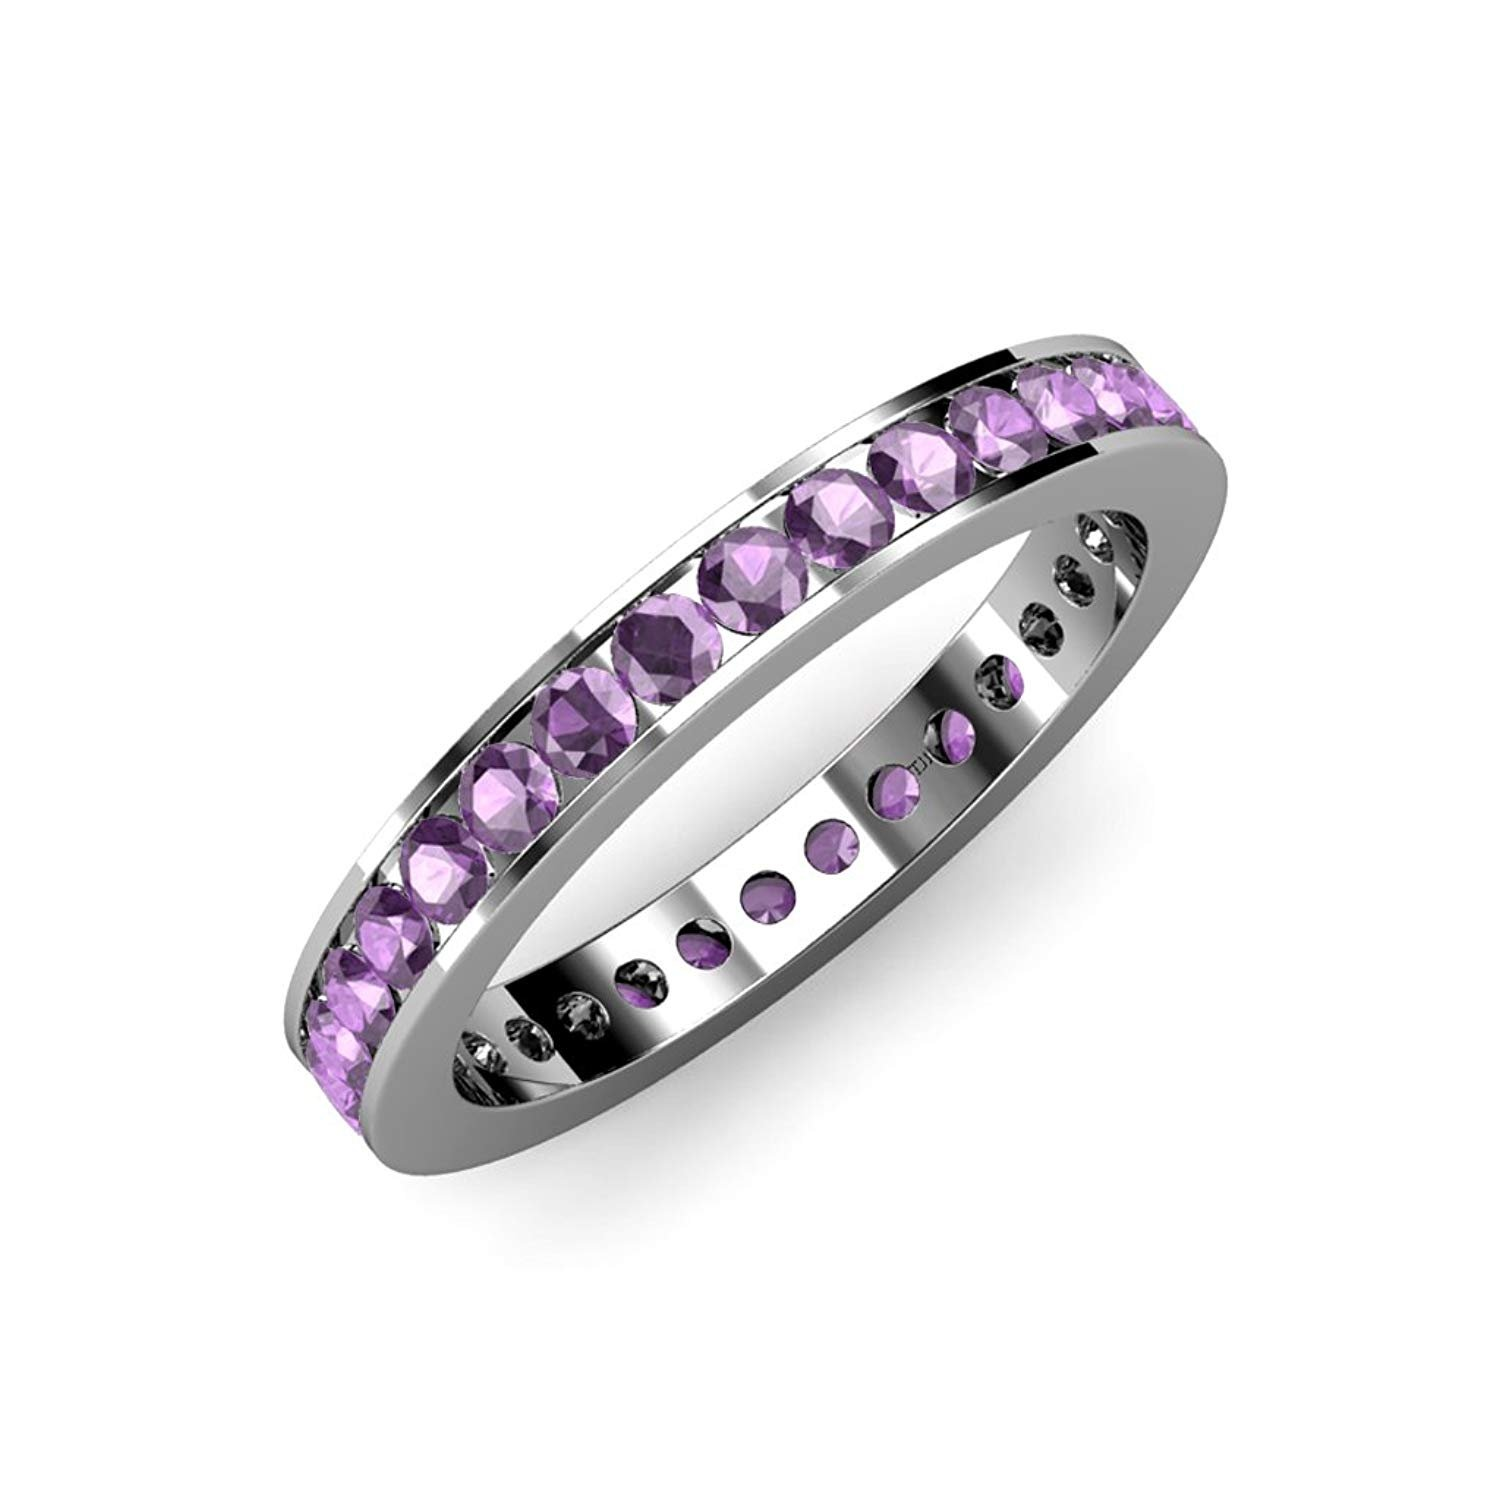 Amethyst Channel Set Eternity Band 1.21 ct tw to 1.42 ct tw in 18K White Gold.size 8.0 by TriJewels